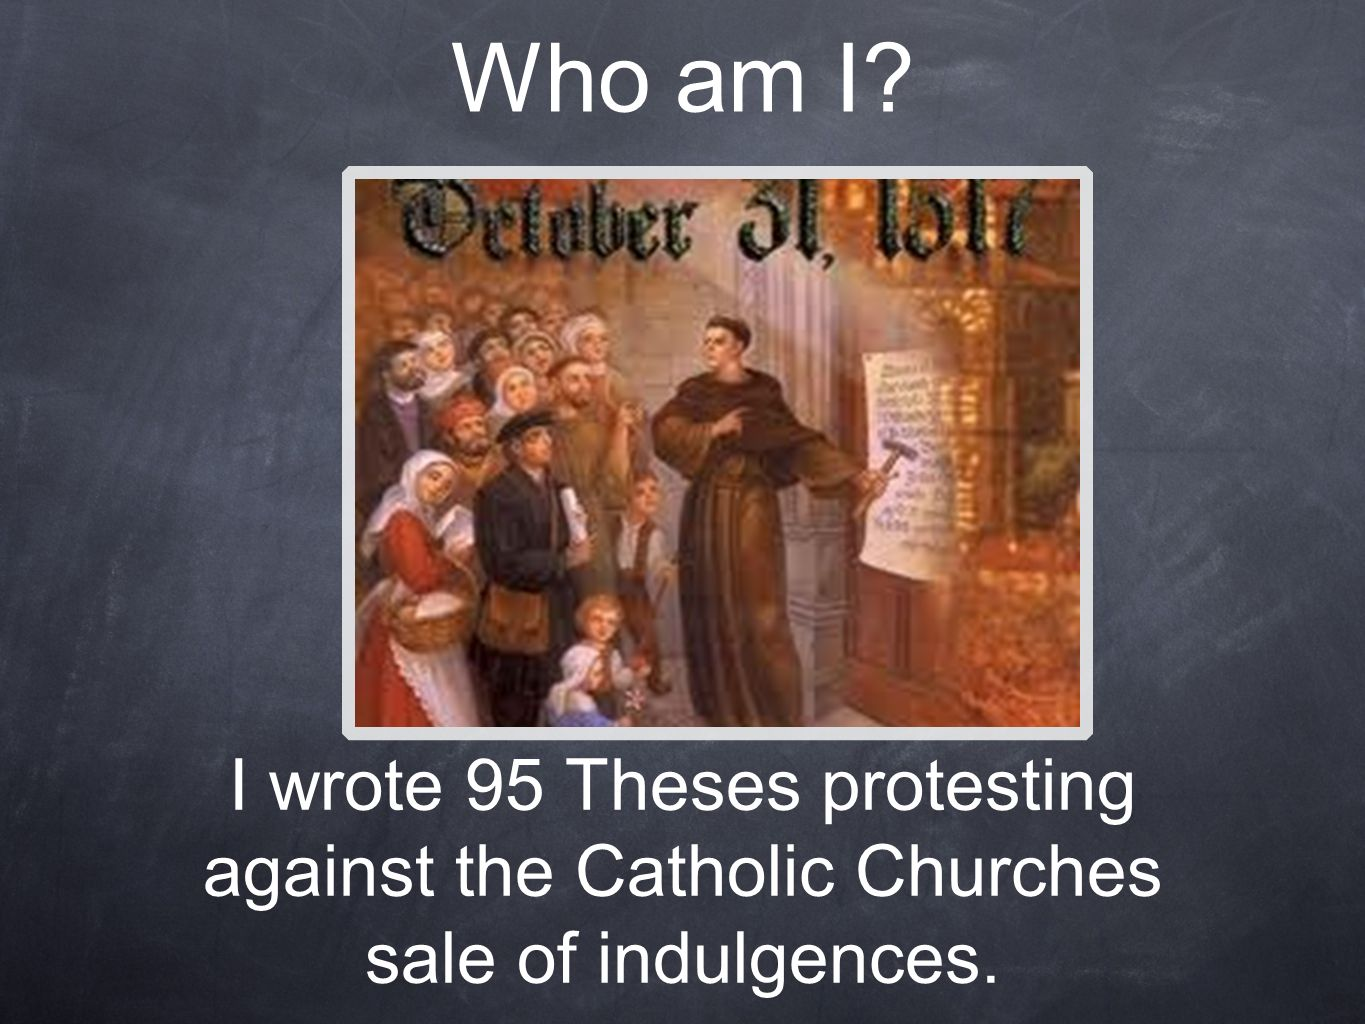 who am i chapter review i wrote theses protesting against  2 i wrote 95 theses